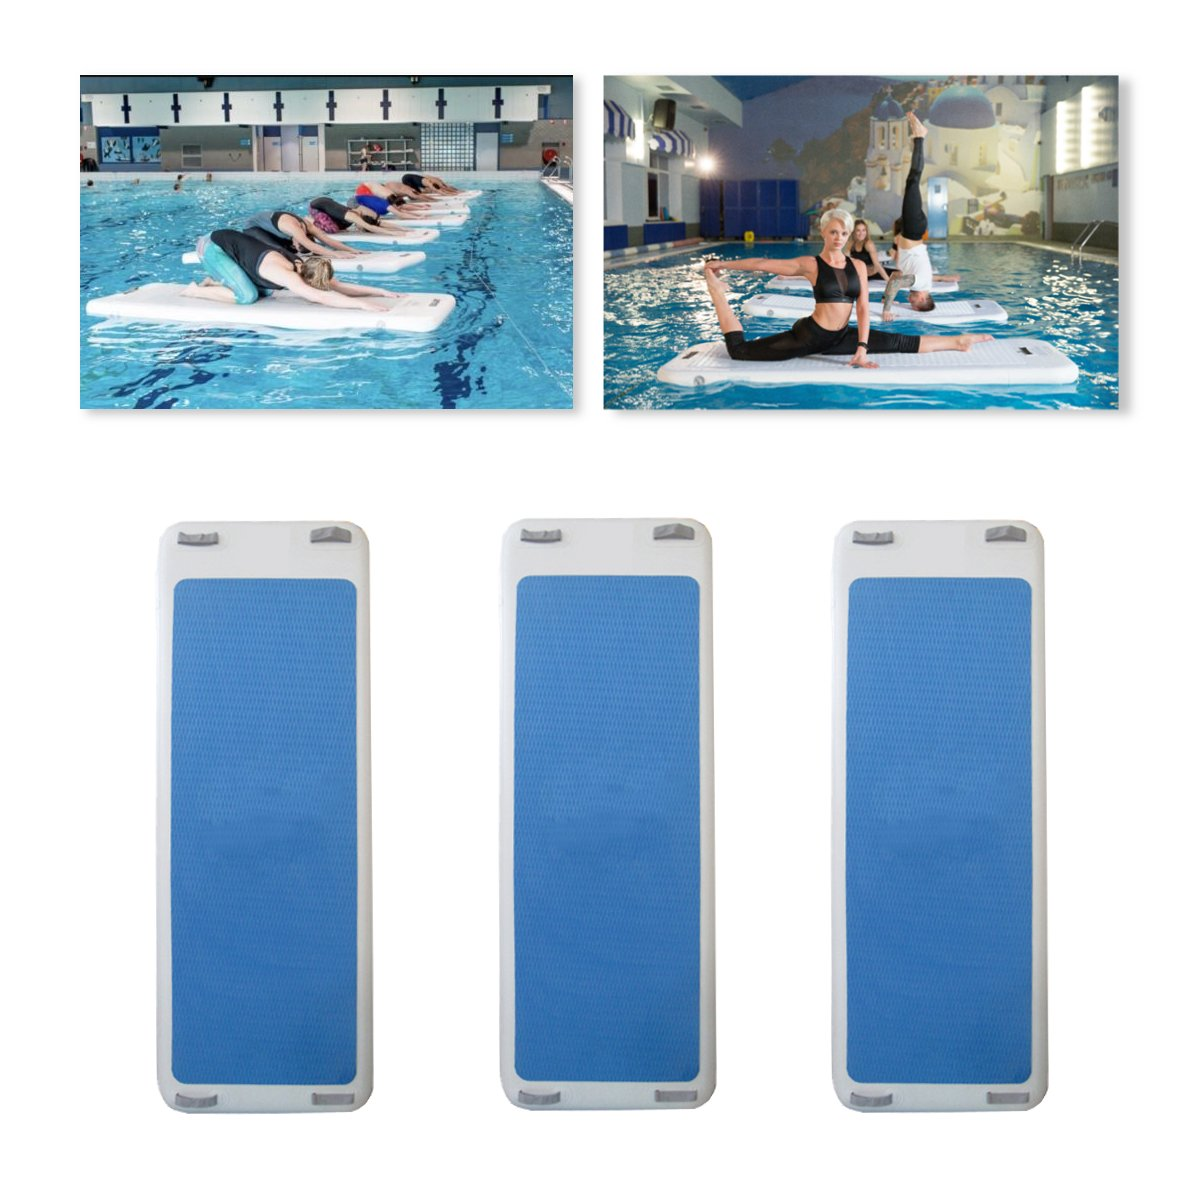 79x24x4inch Inflatable Floating Yoga Mat Air Tumbling Track For Gymnastics SUP Paddle Board